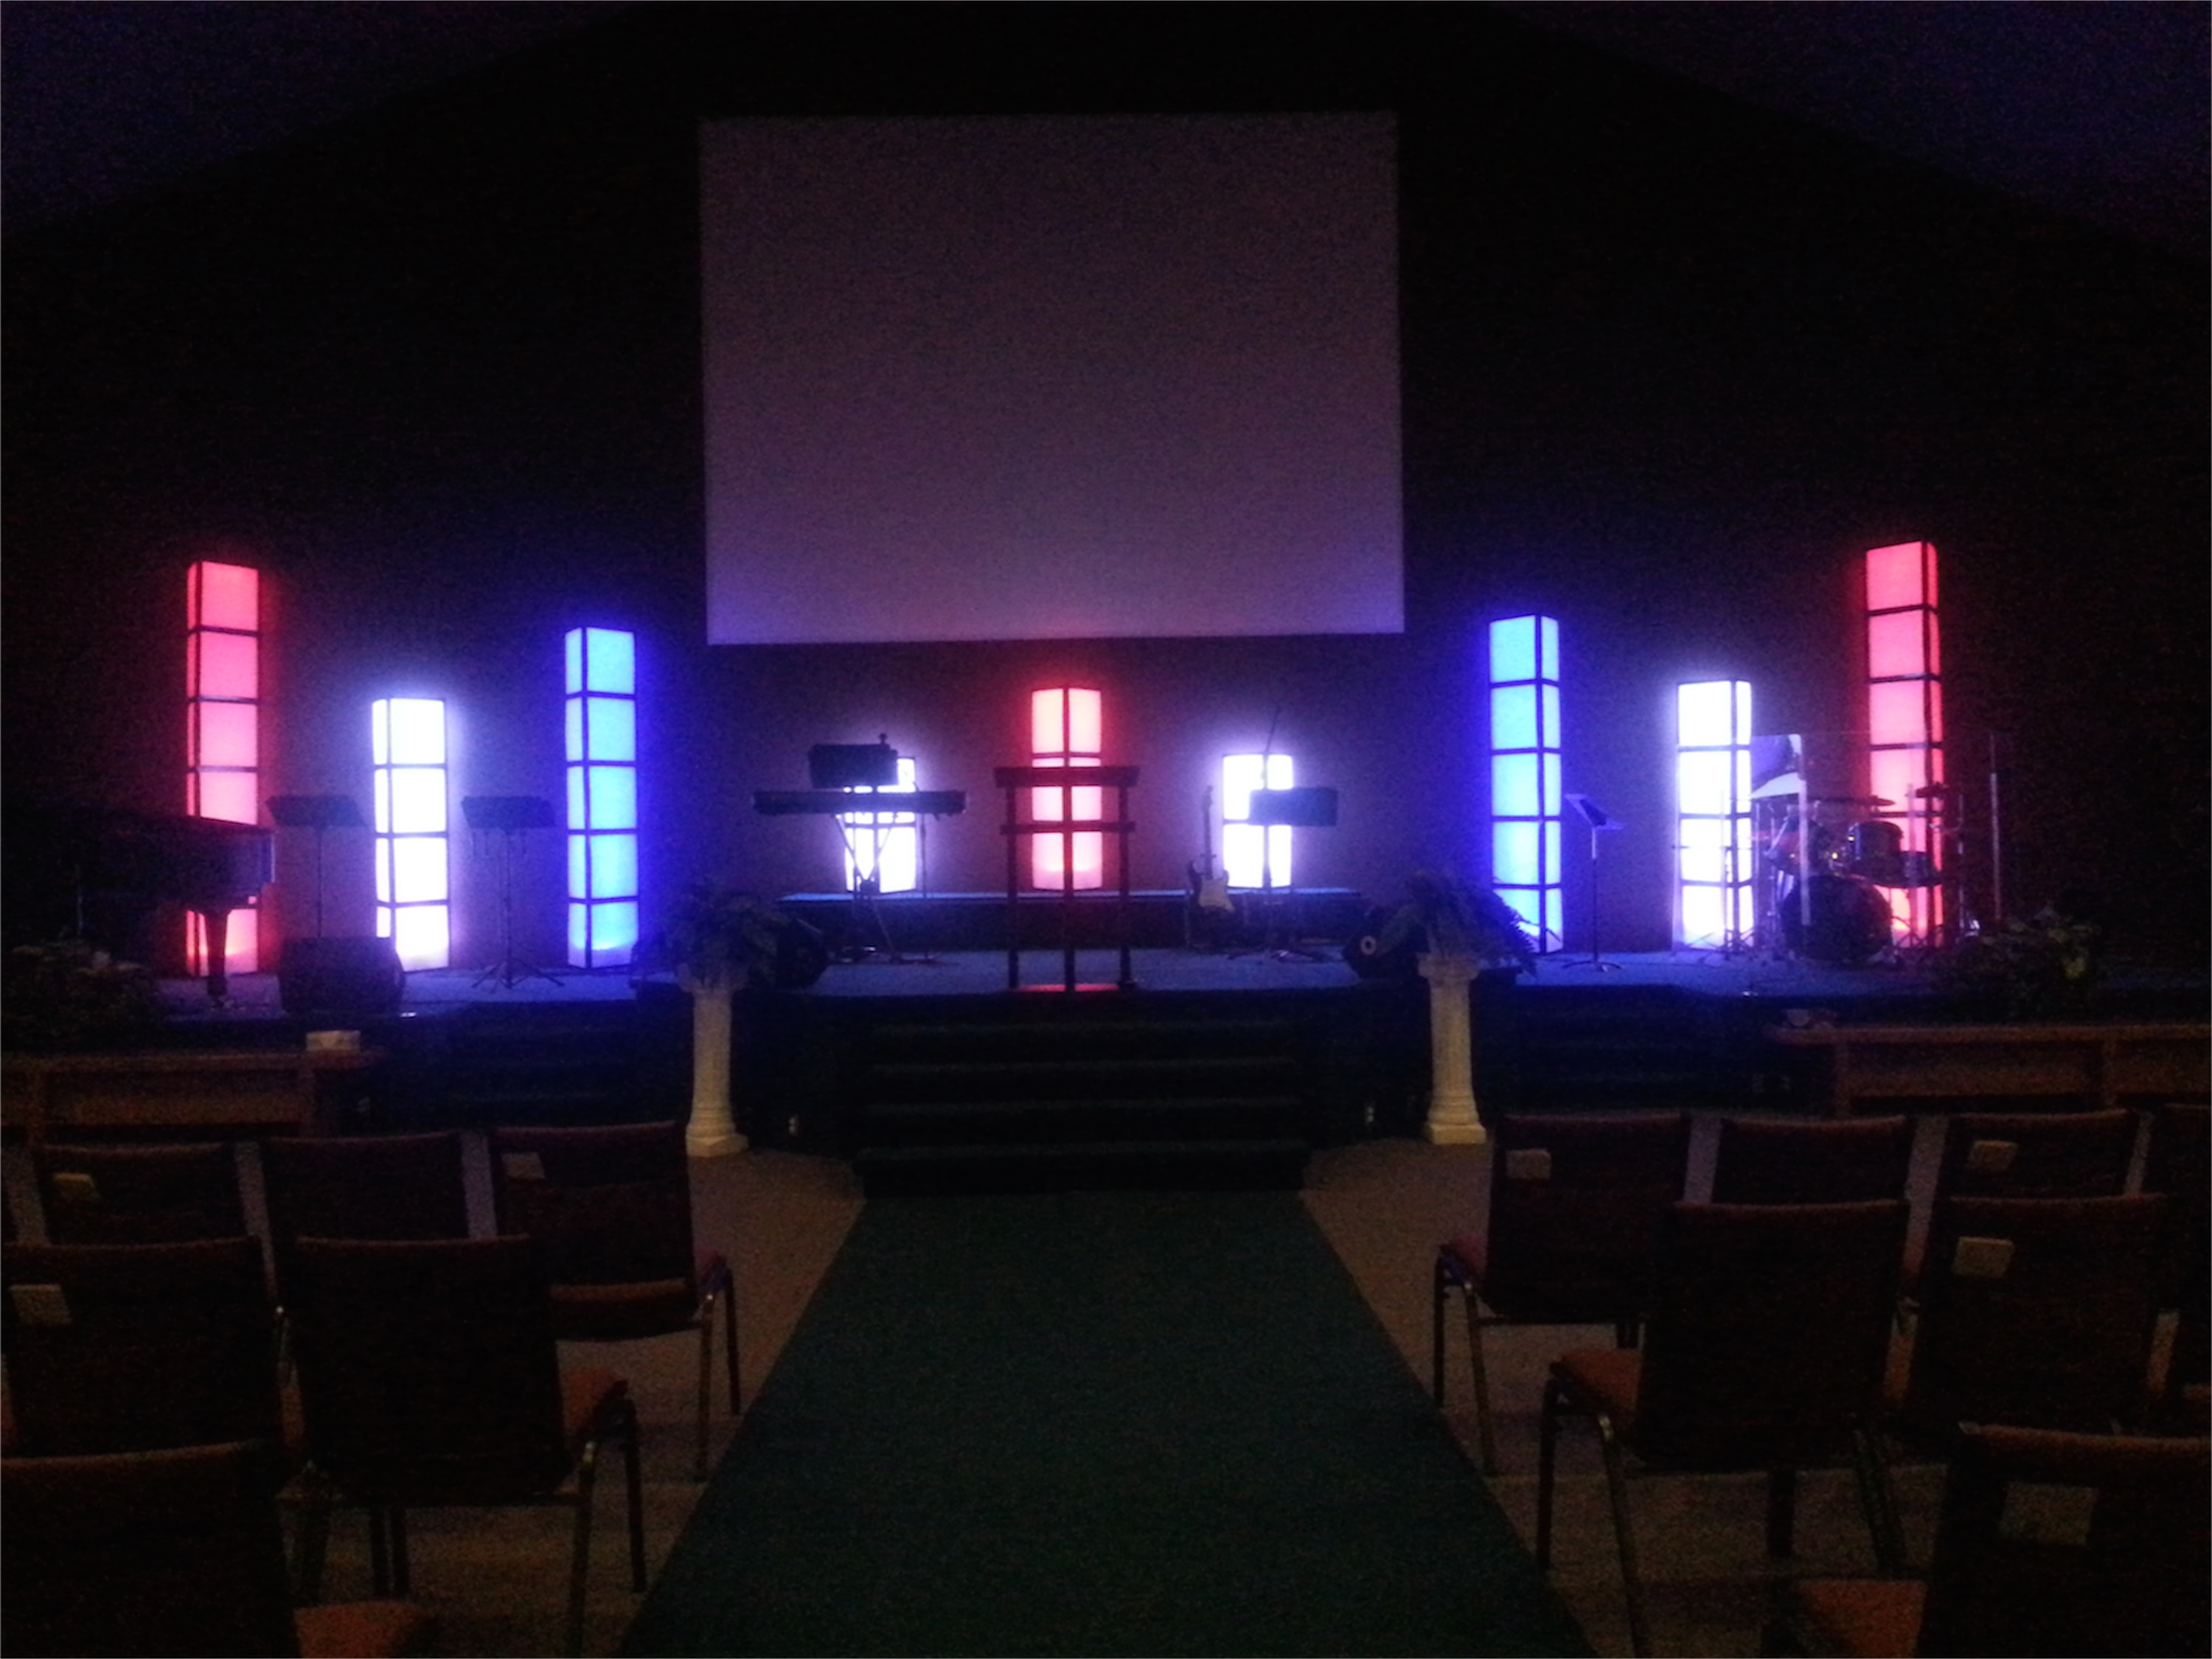 Church Stage Design Ideas Design Small Church Stage Design Ideas